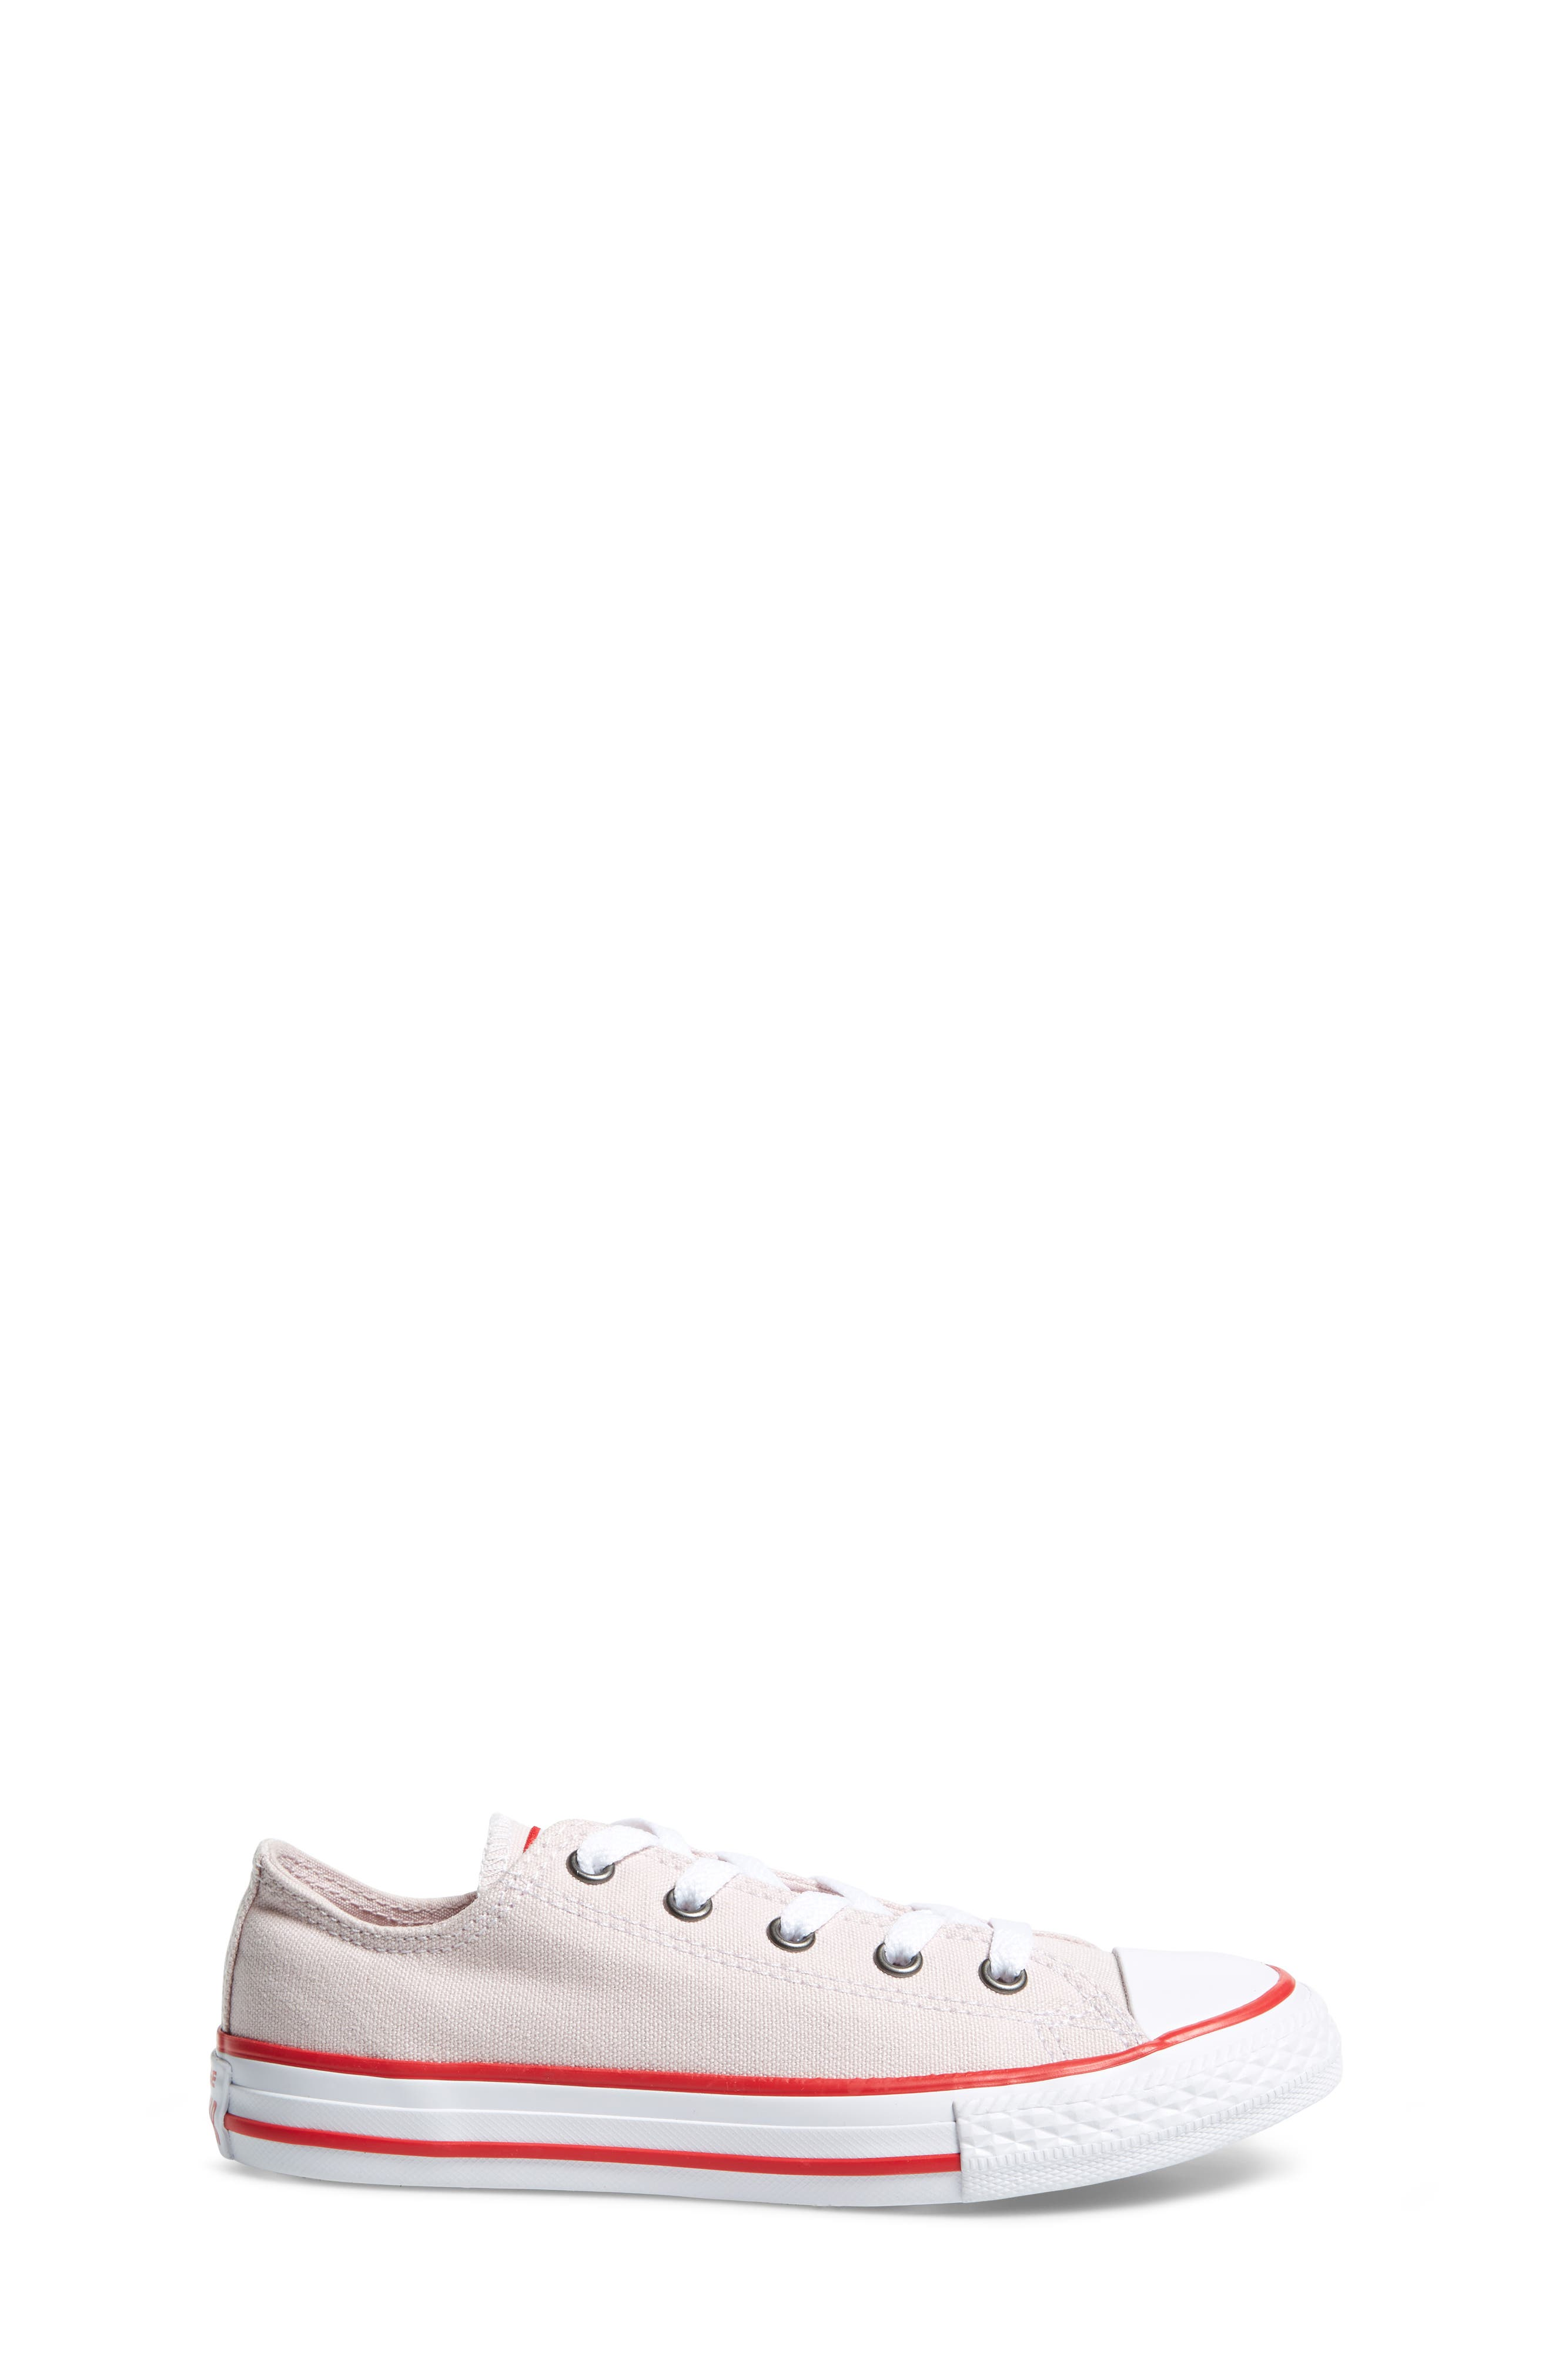 Chuck Taylor<sup>®</sup> All Star<sup>®</sup> Low Top Sneaker,                             Alternate thumbnail 6, color,